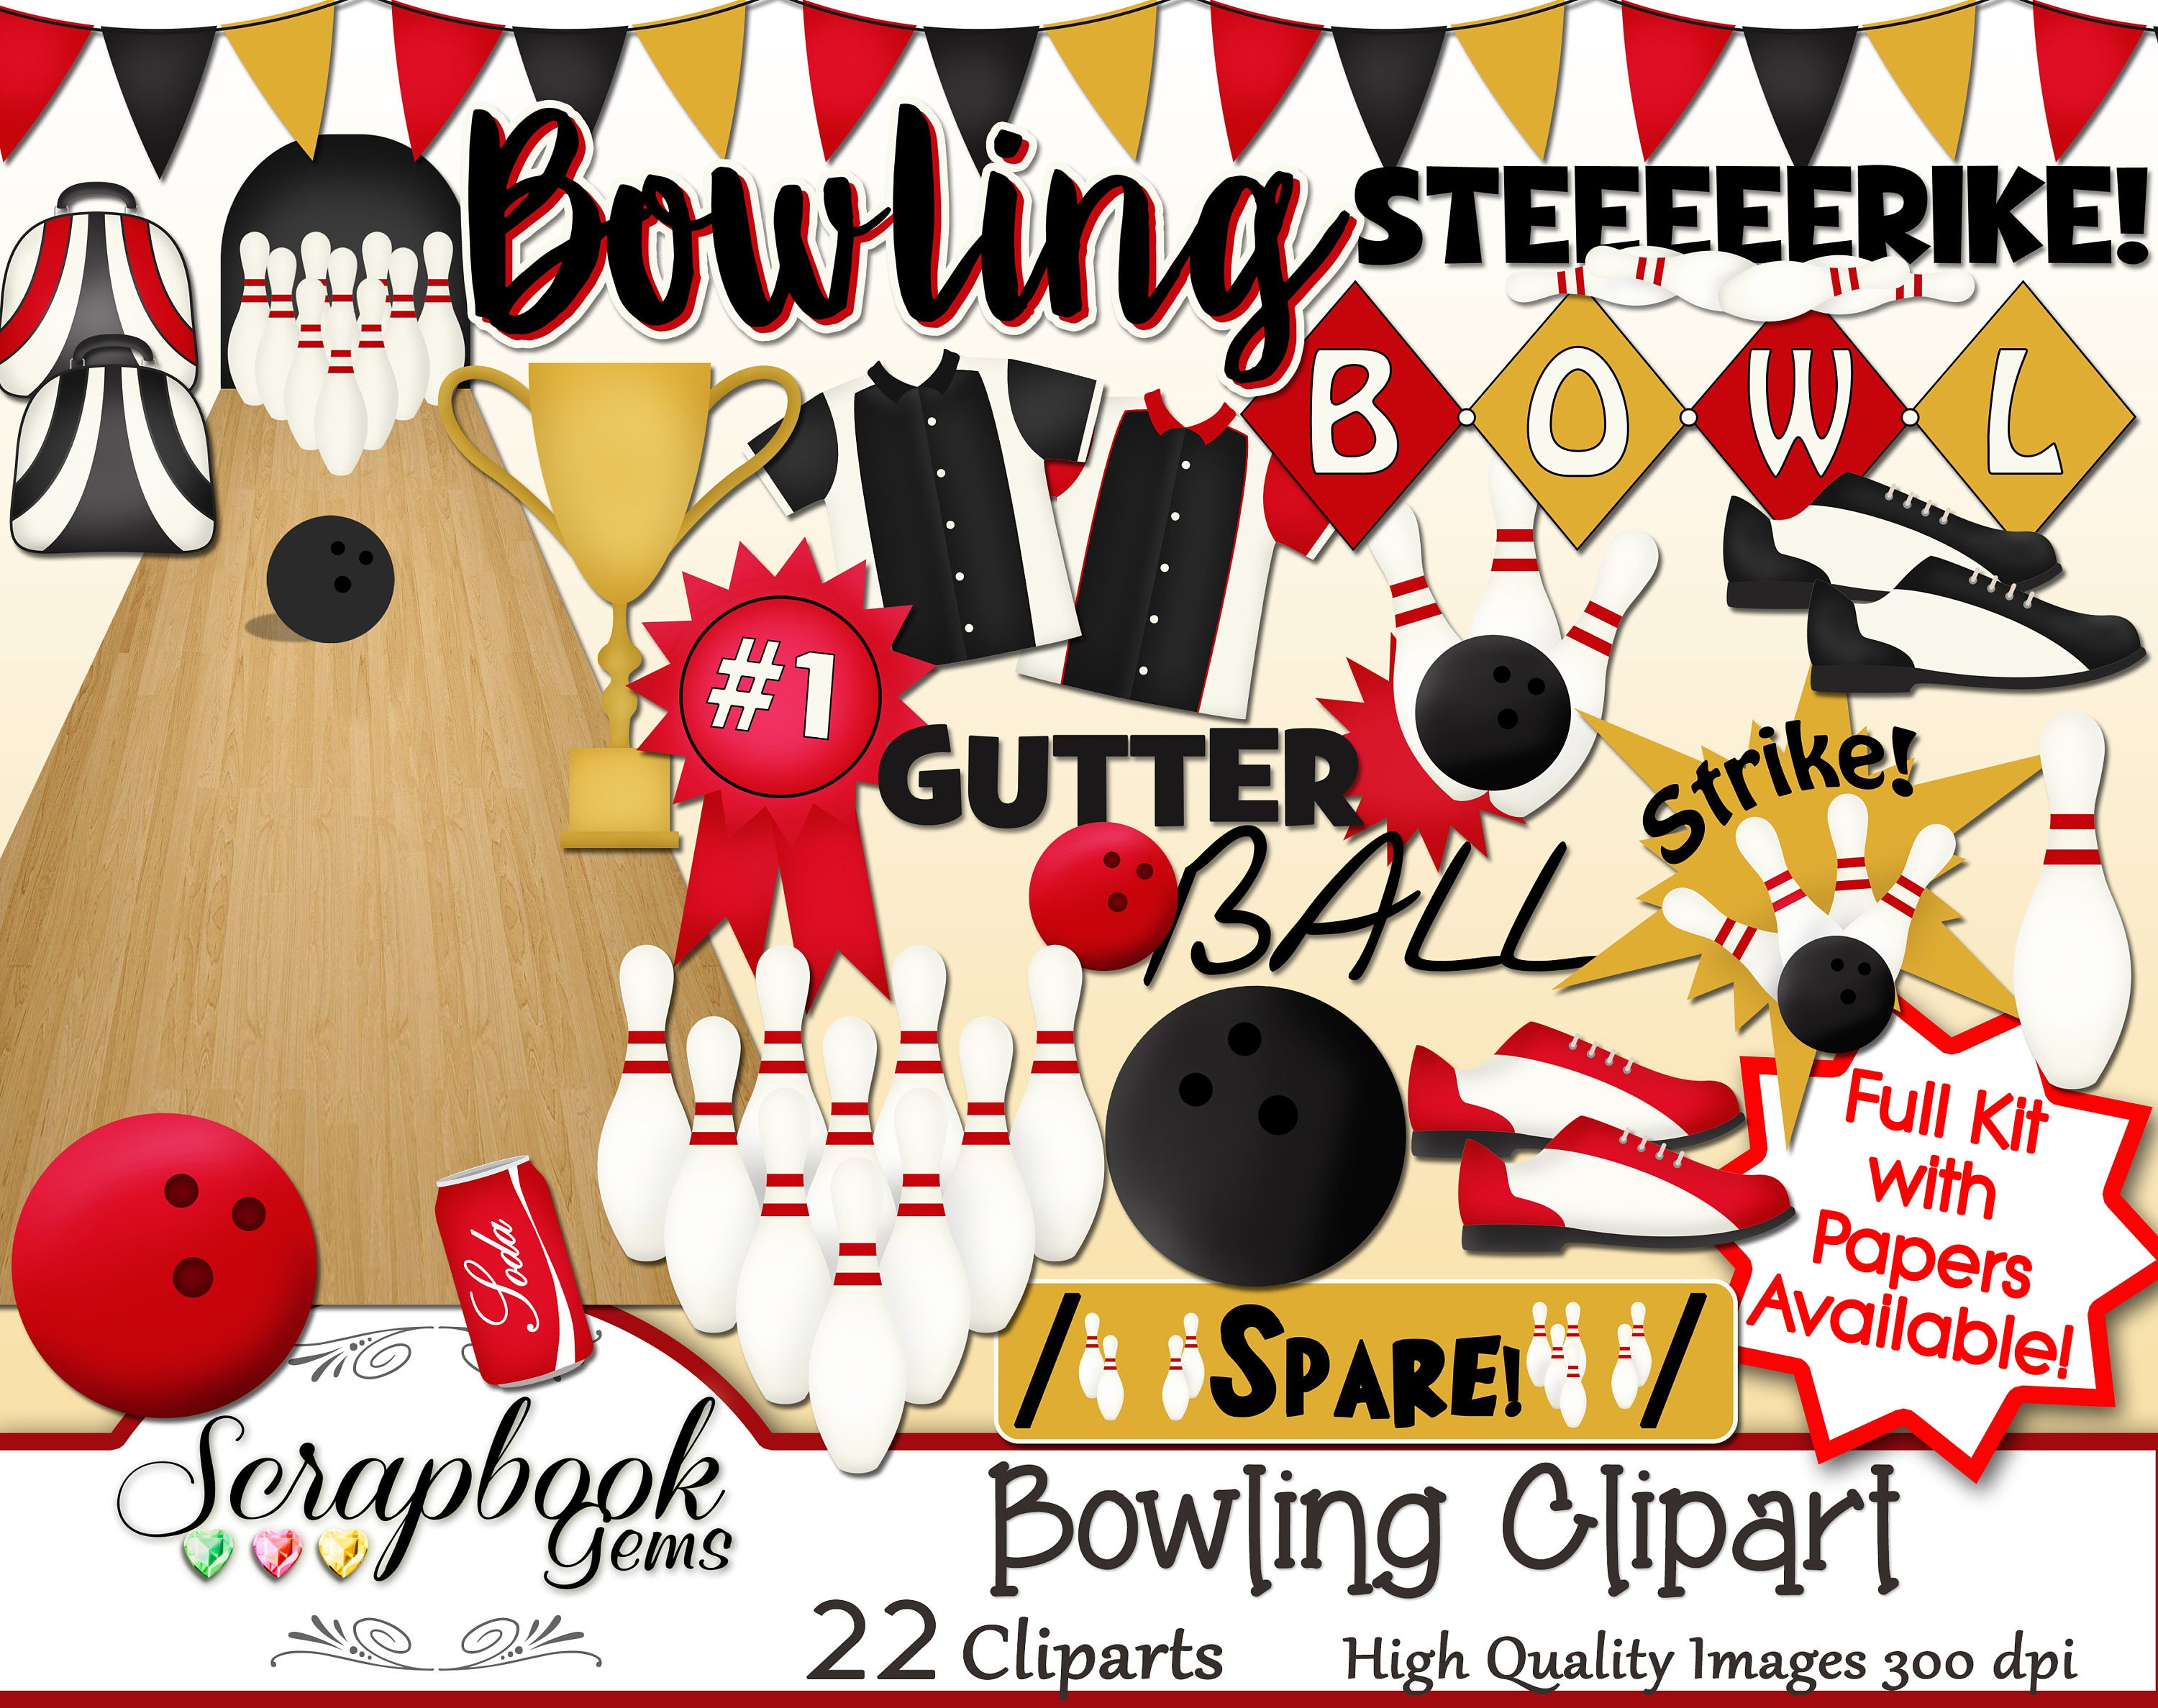 BOWLING Clipart, 22 png Clipart files Instant Download bowling ball bowling  alley bowling lanes soda strike spare butter flag banner pins.